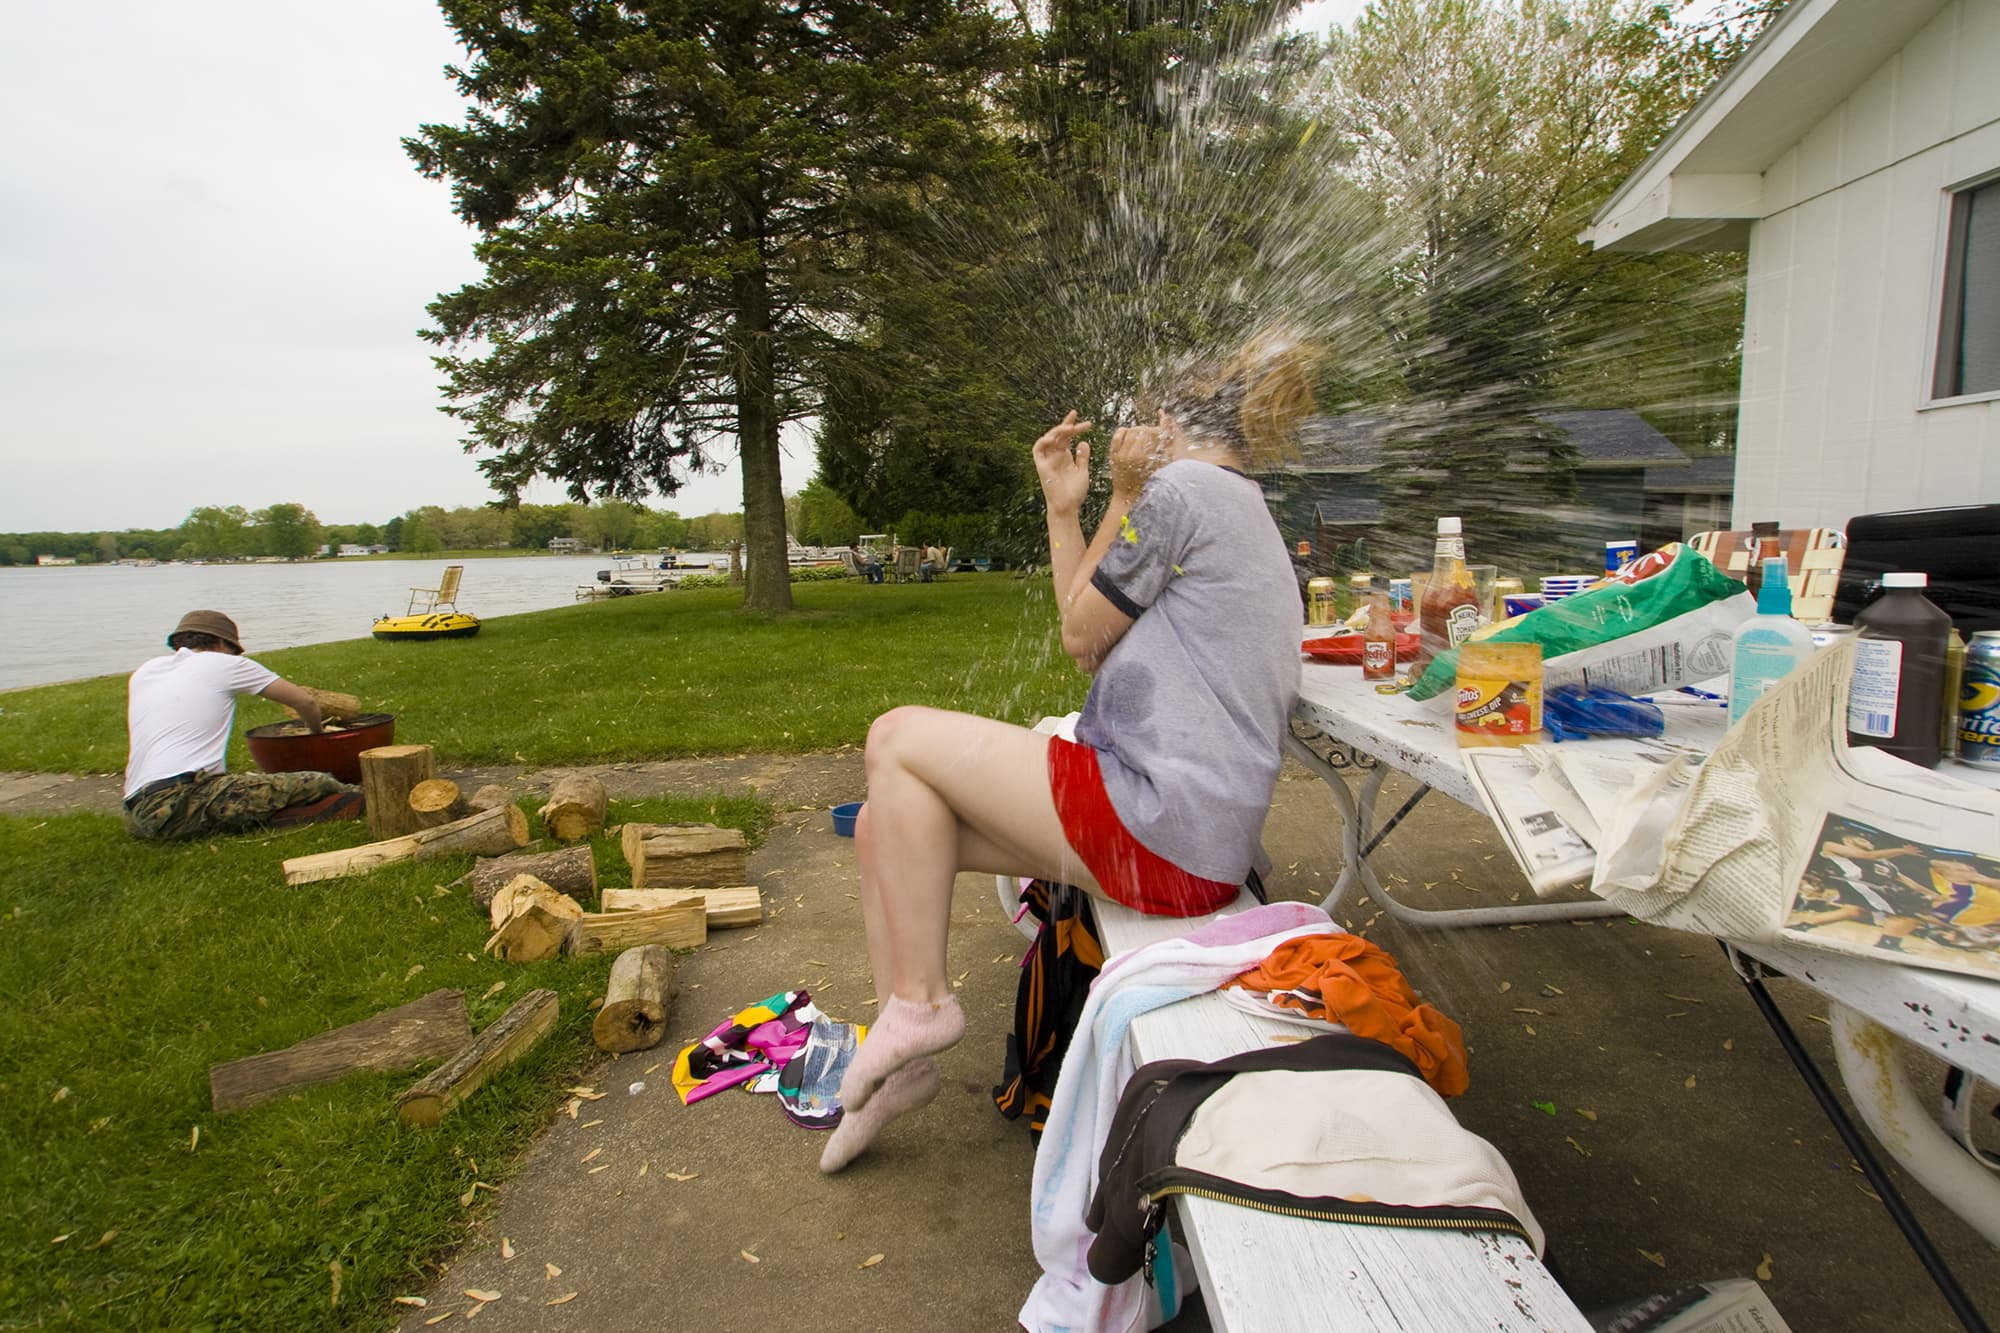 A water balloon exploding on my head - Memorial Day Weekend in Decatur, Michigan